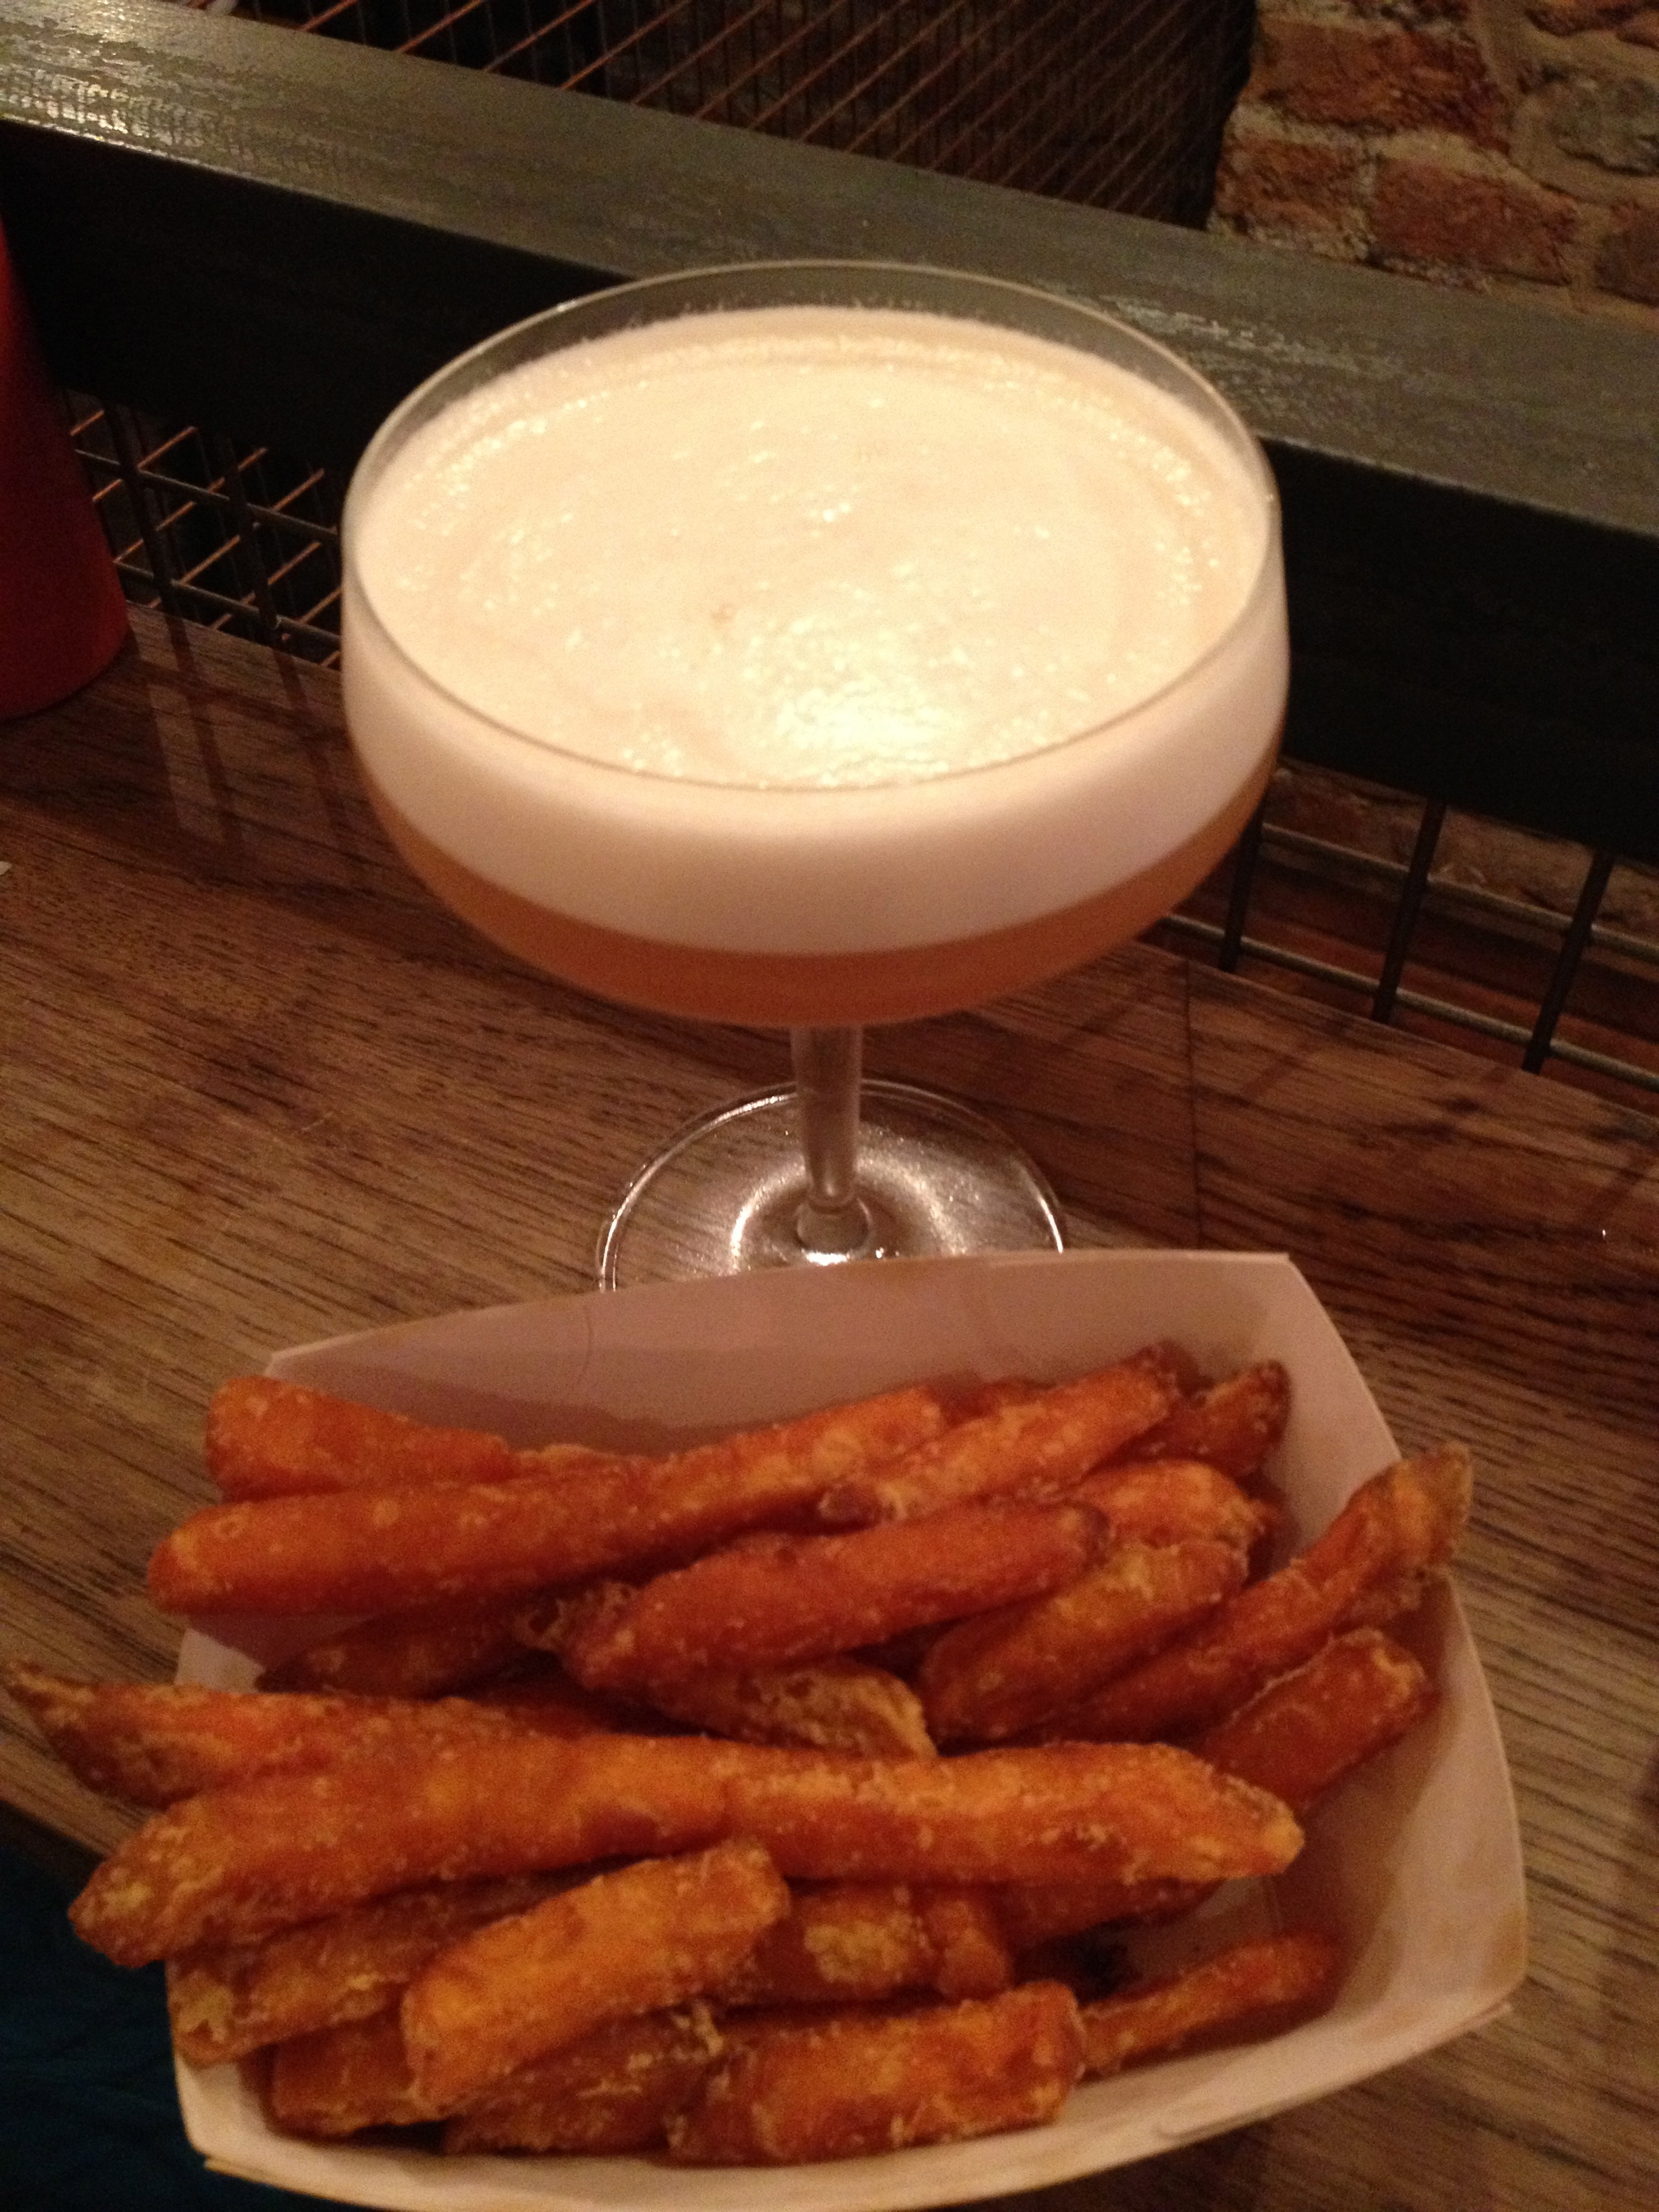 The Quince Sour with a side of sweet potato fries